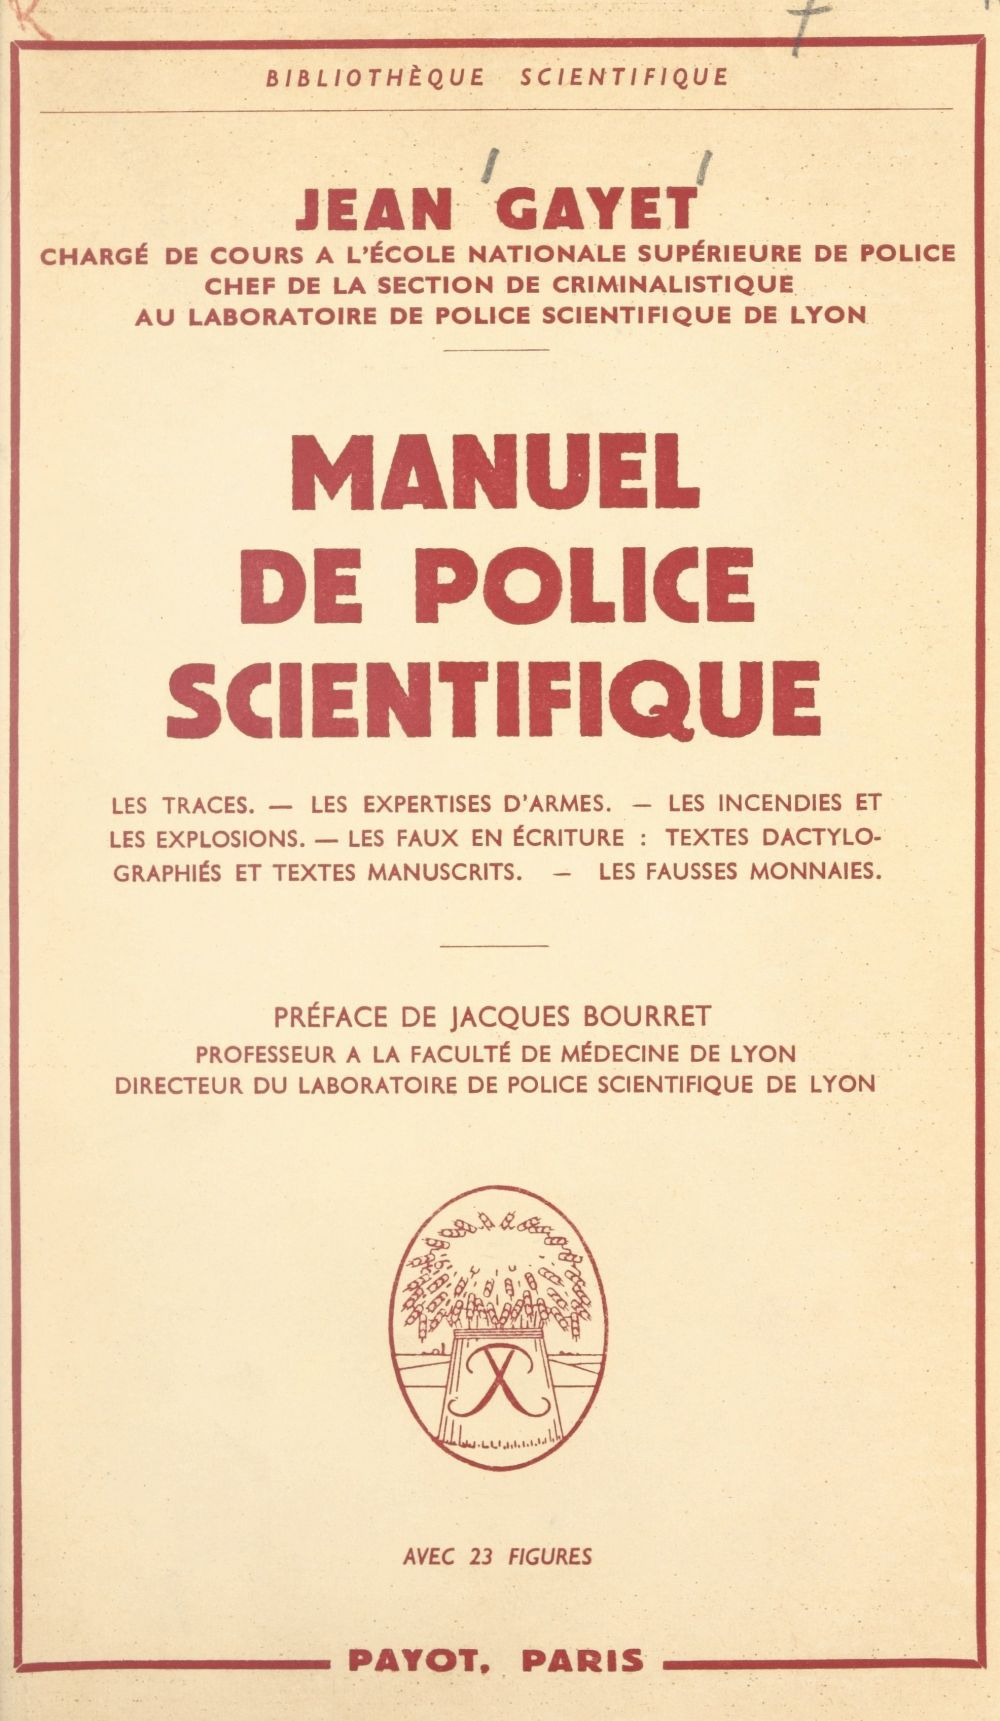 Manuel de police scientifique